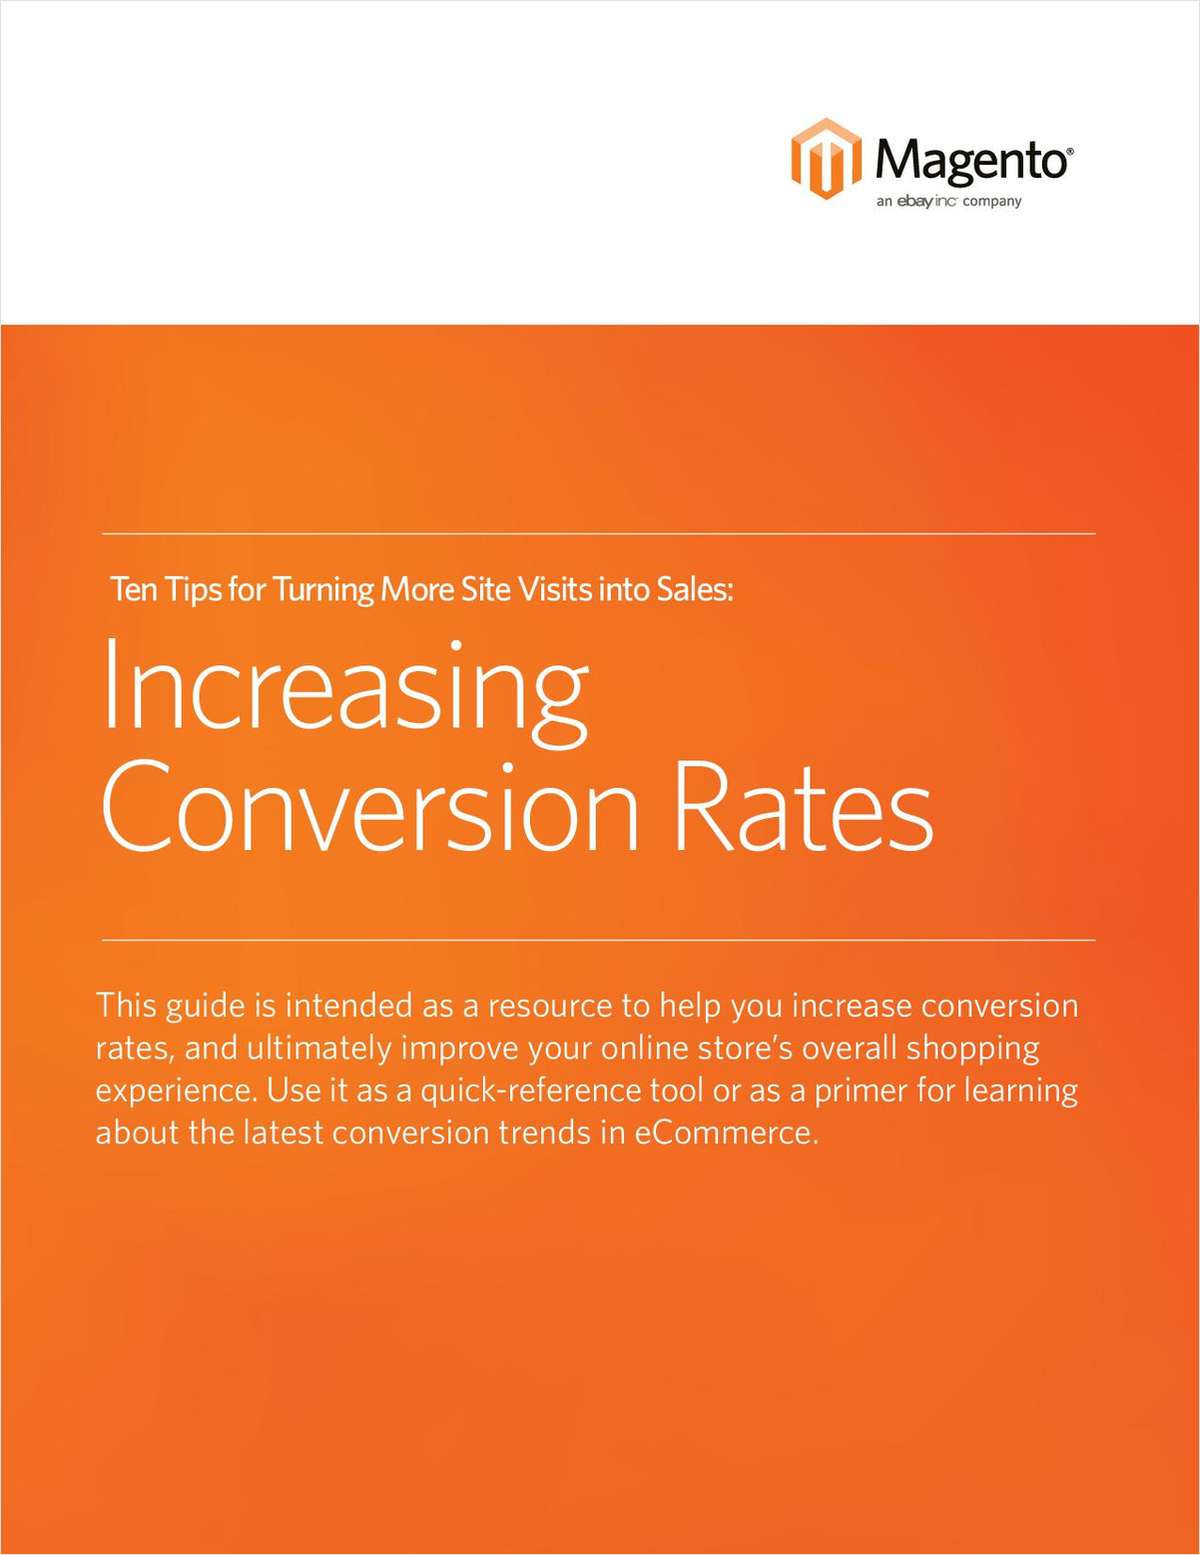 10 Tips to Ignite Conversion Today